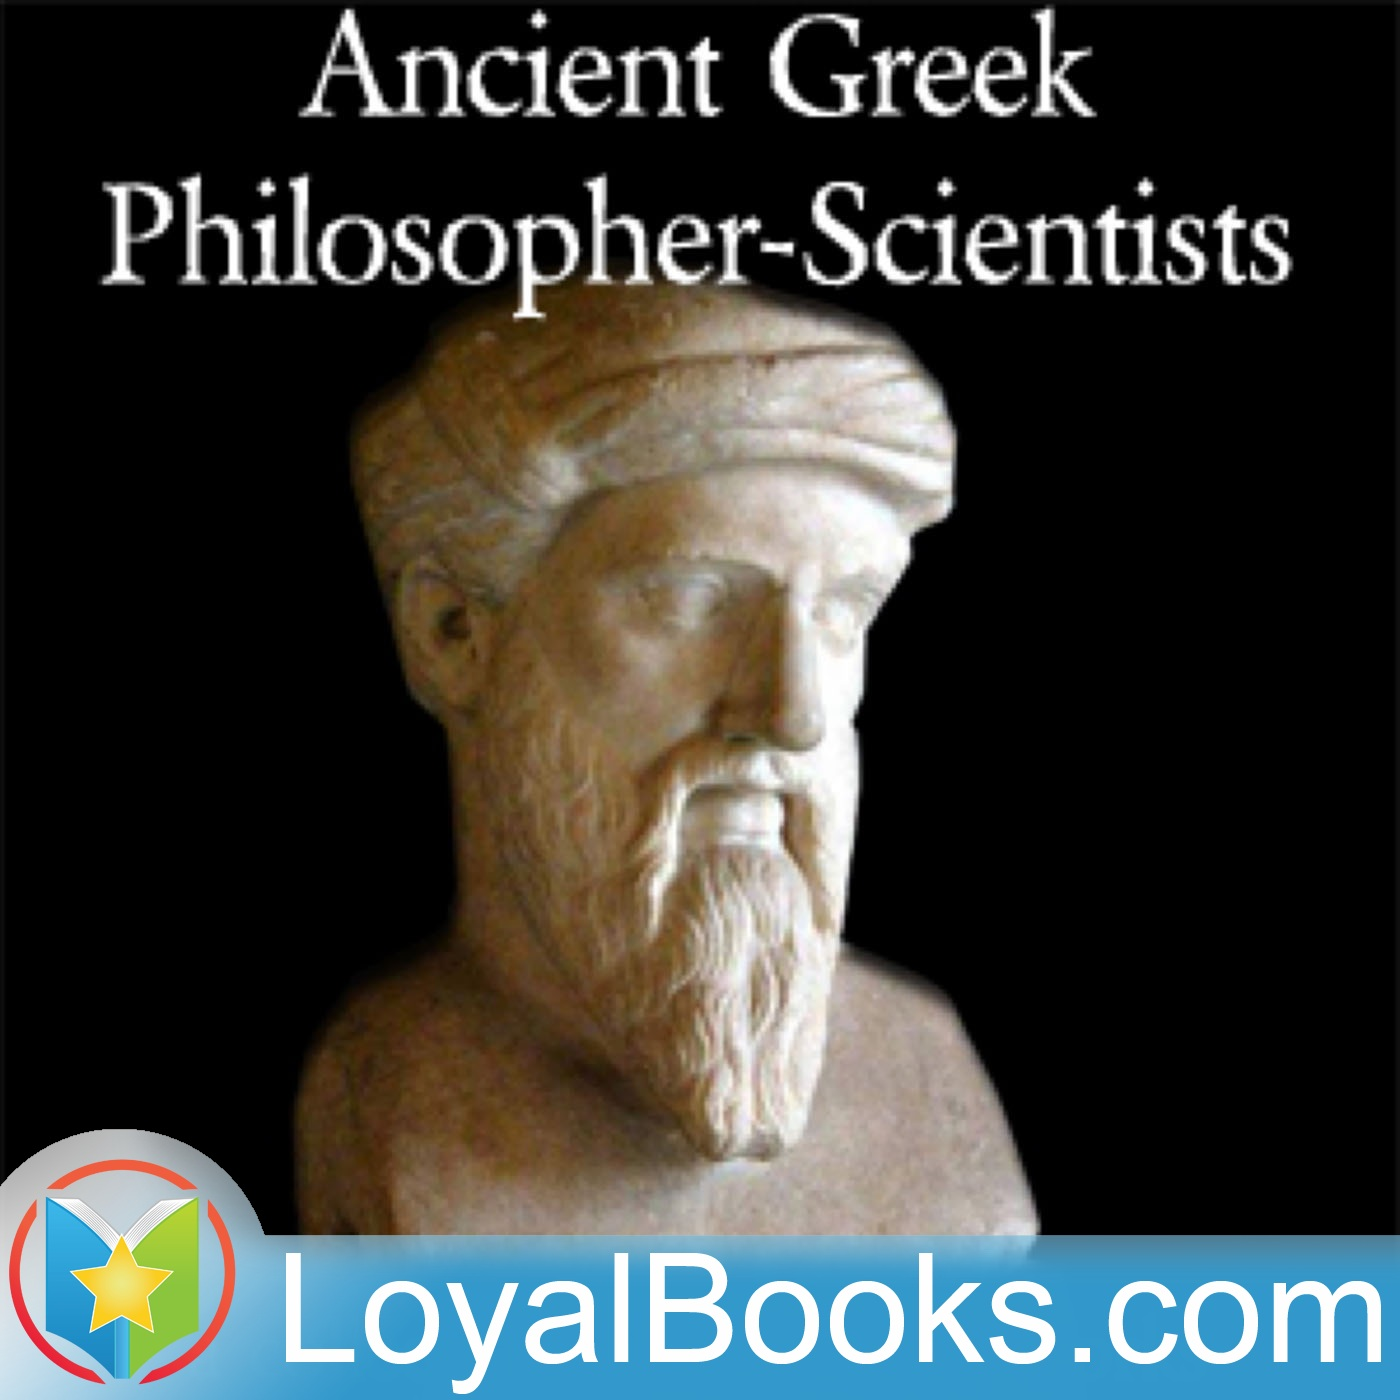 <![CDATA[Ancient Greek Philosopher-Scientists by Varous]]>